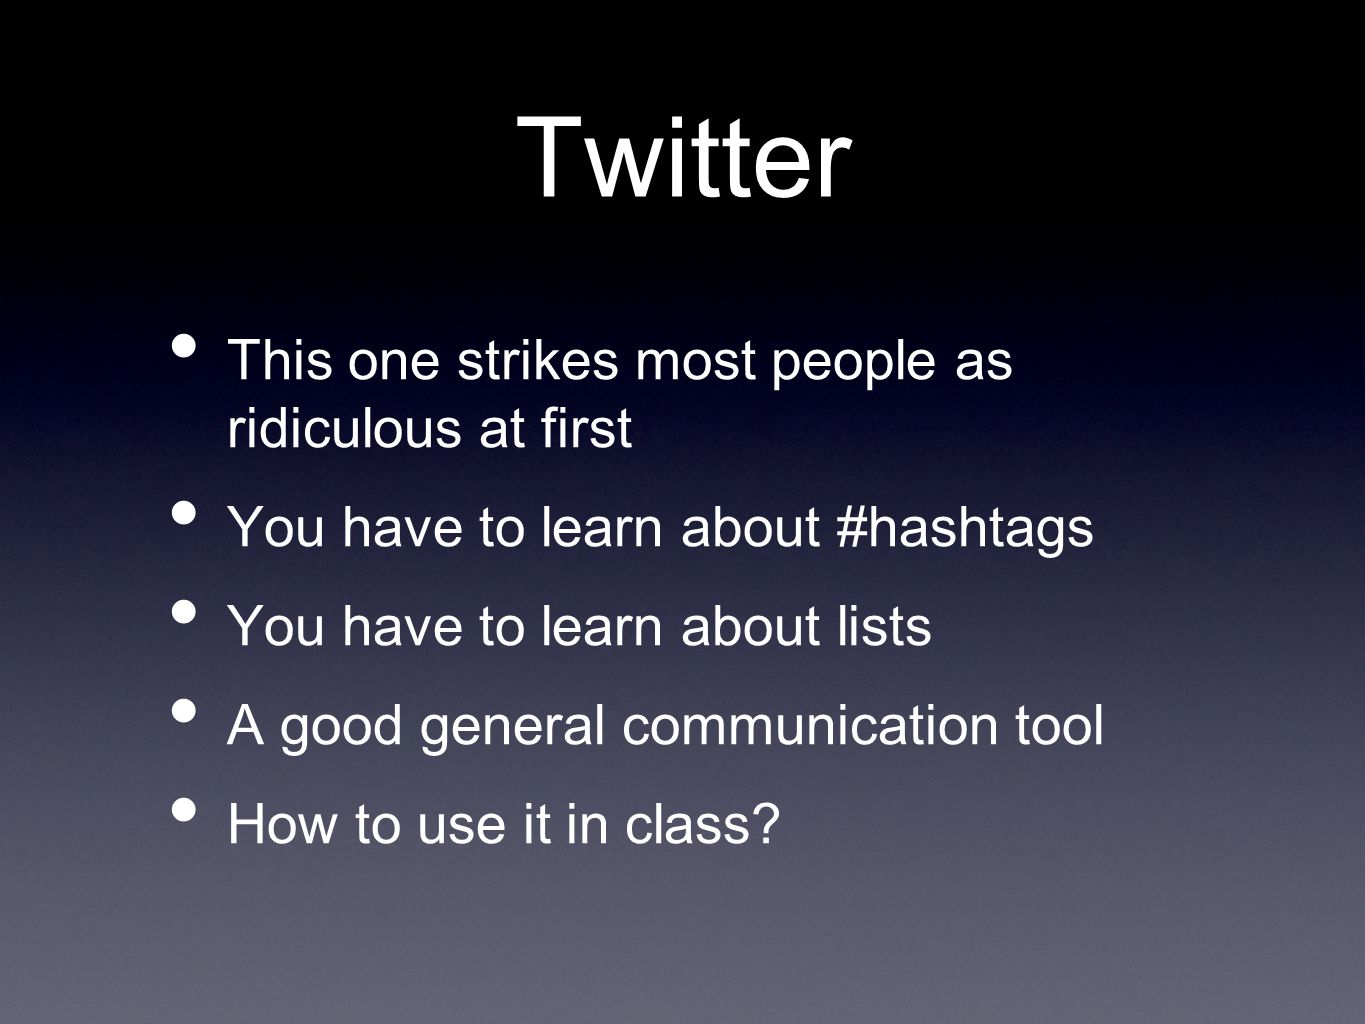 Twitter This one strikes most people as ridiculous at first You have to learn about #hashtags You have to learn about lists A good general communication tool How to use it in class